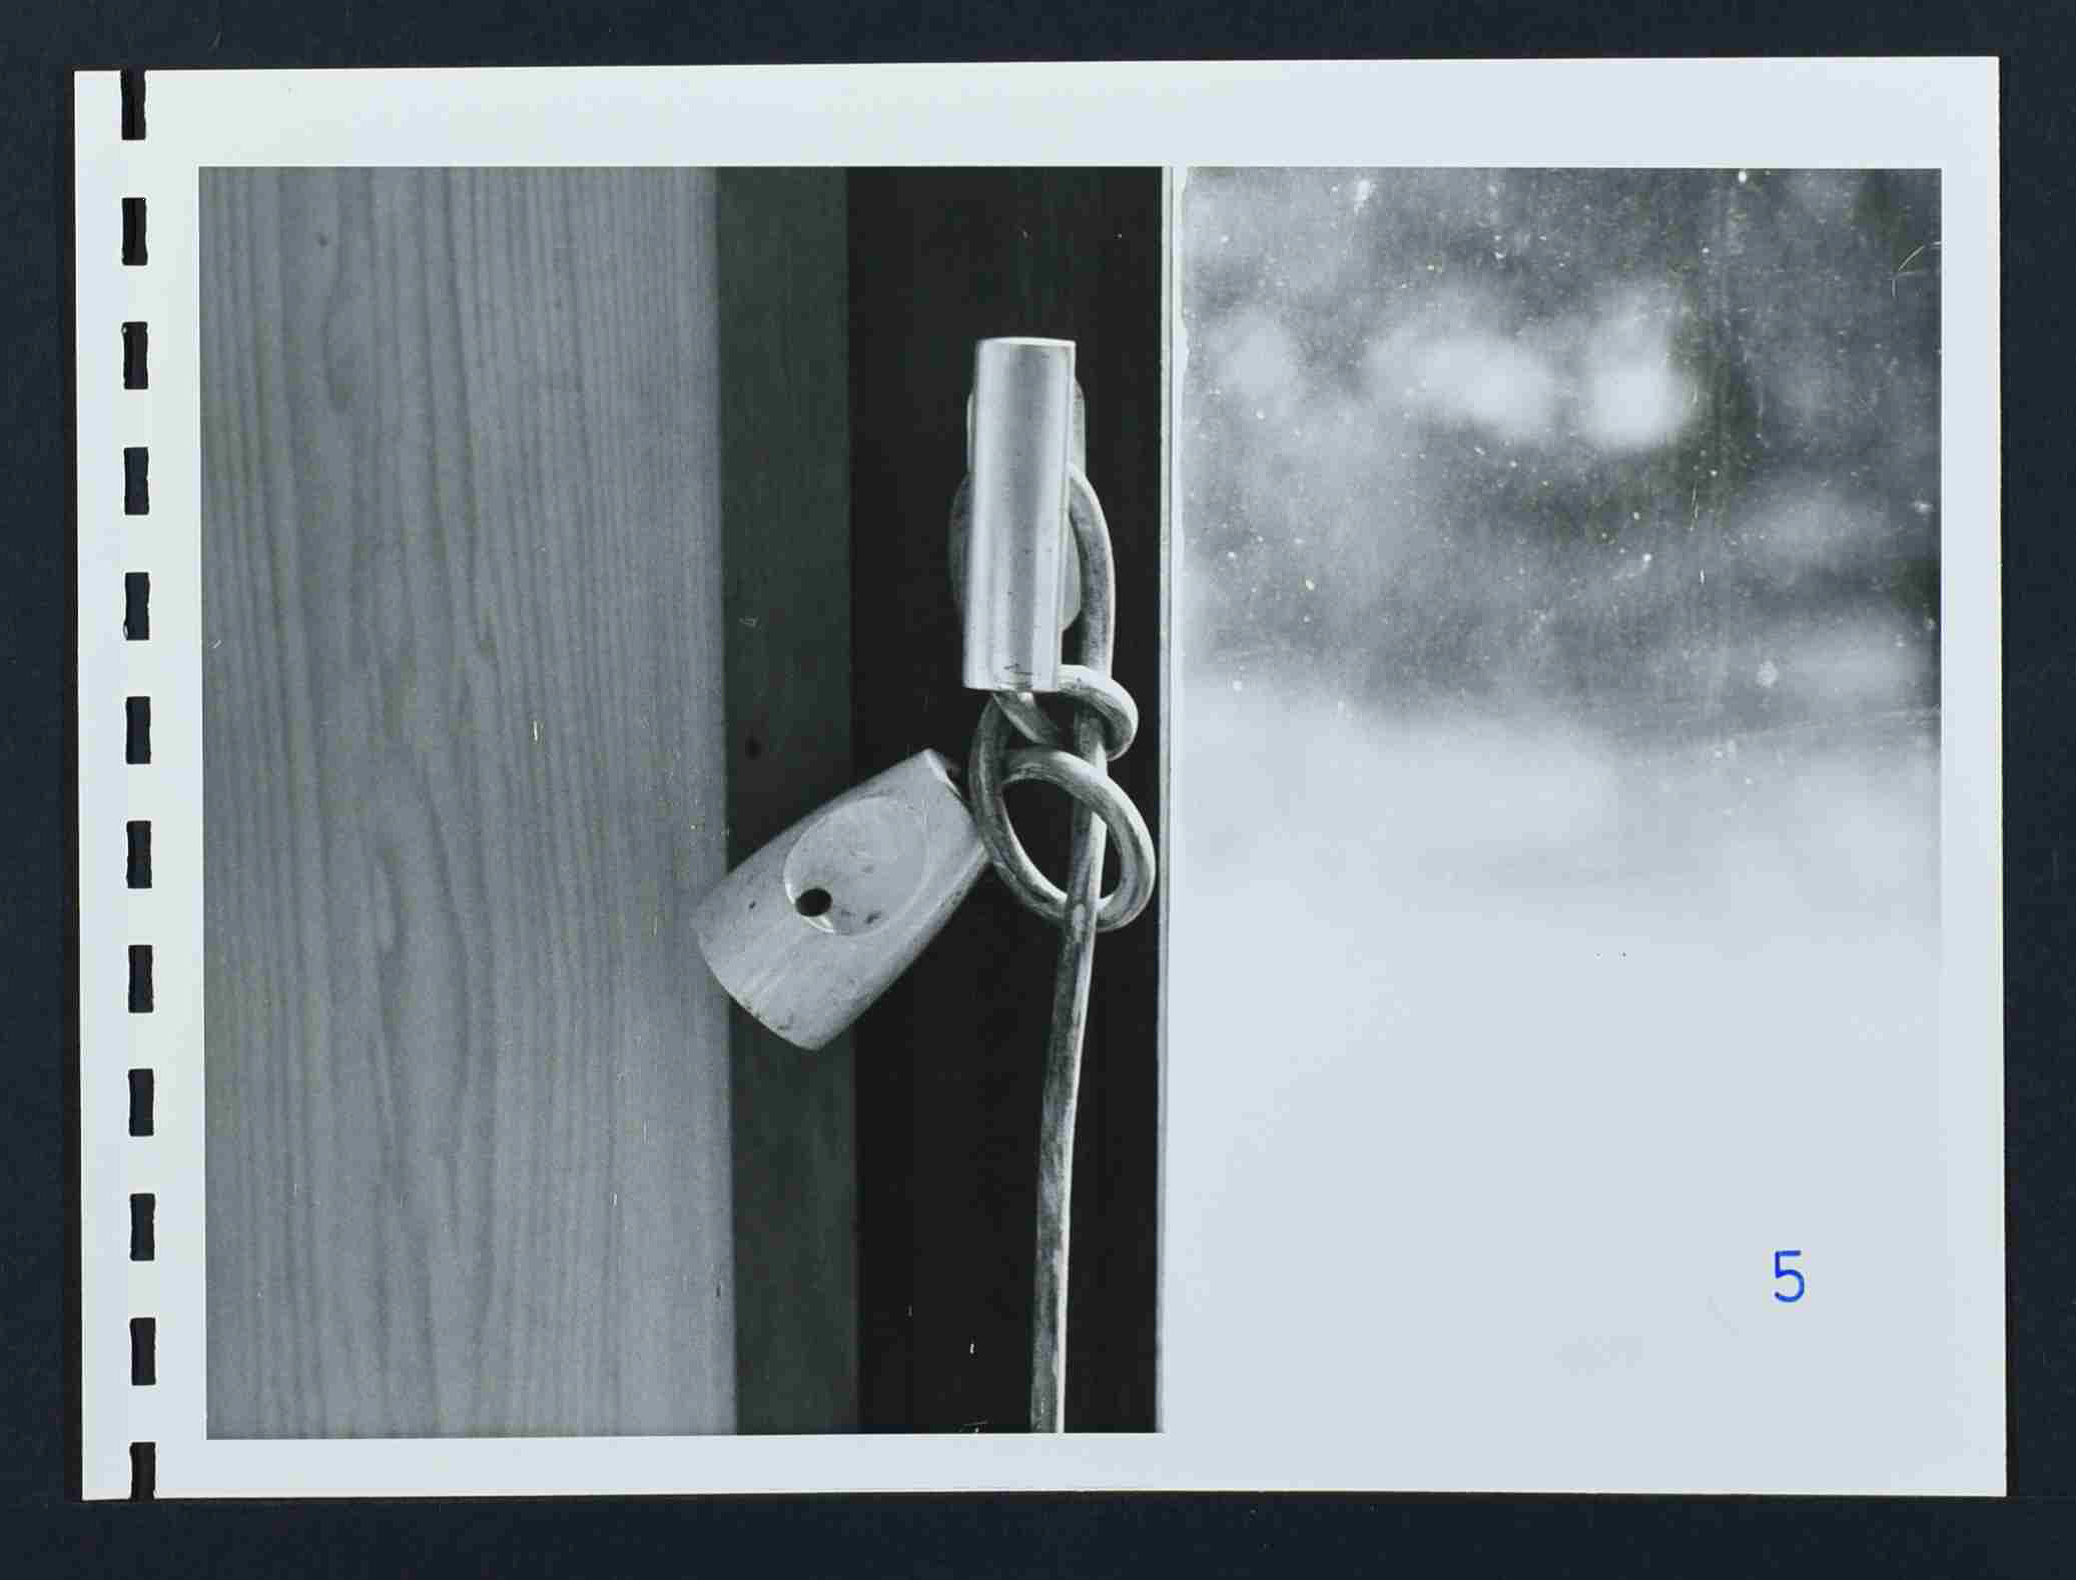 Photo of the electric extension cable tied to the window of the cabin where Hess was found strangled.